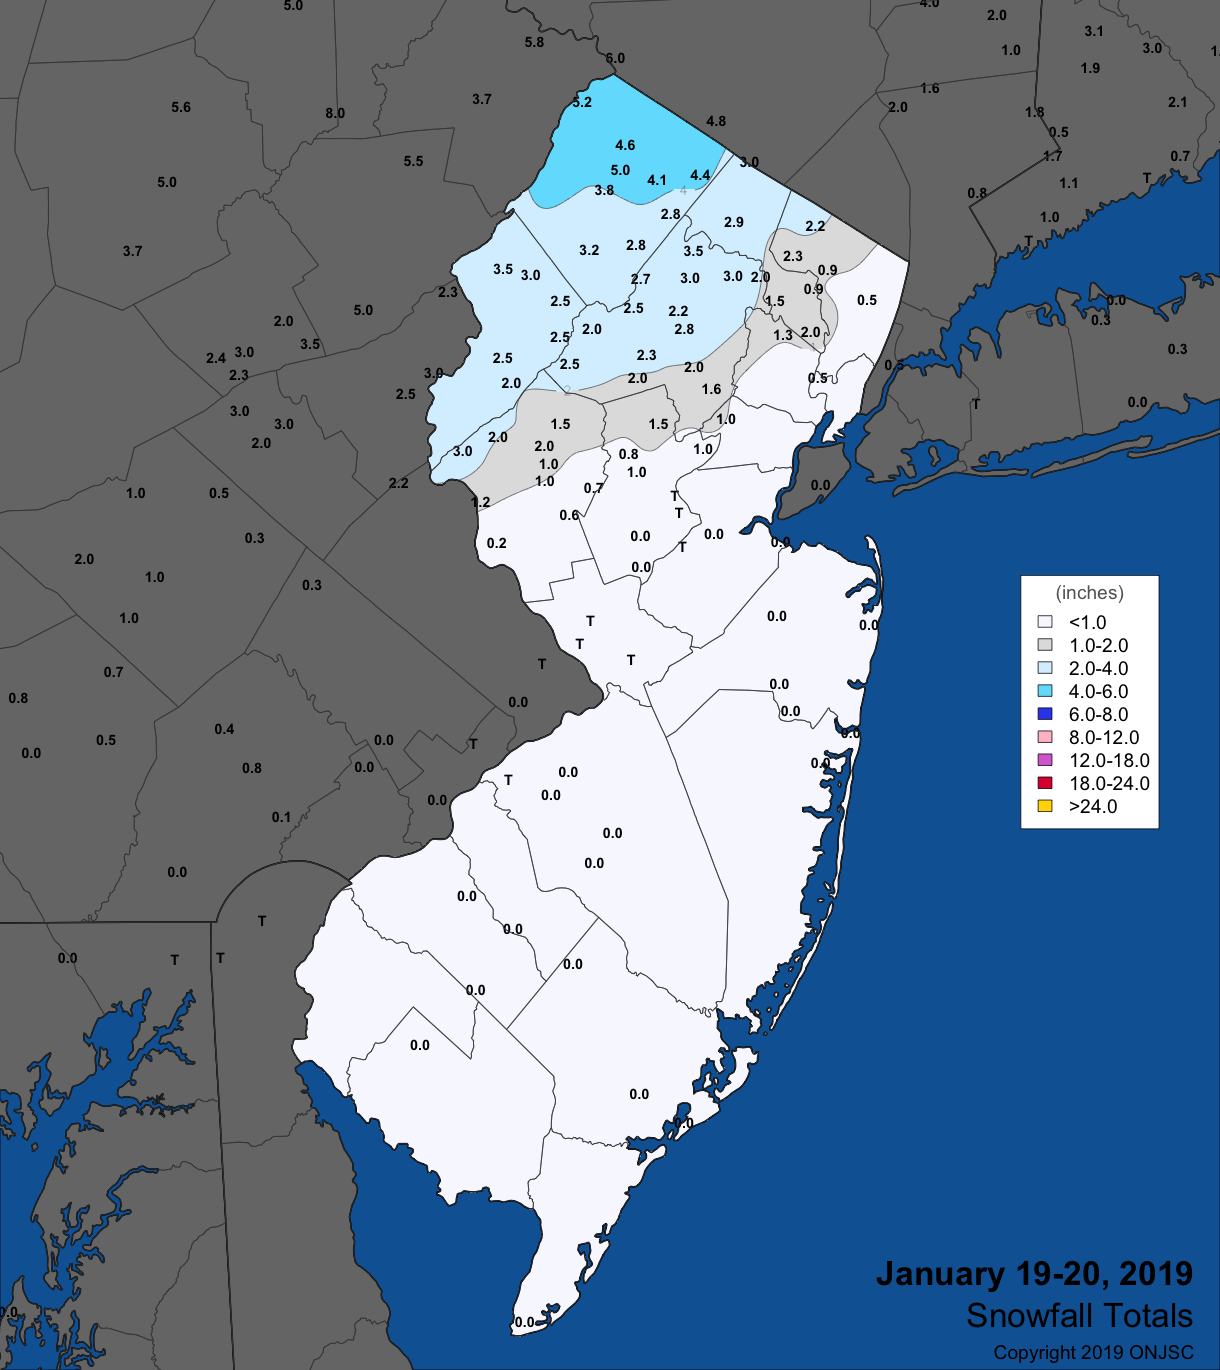 Snowfall map for January 19th-20th